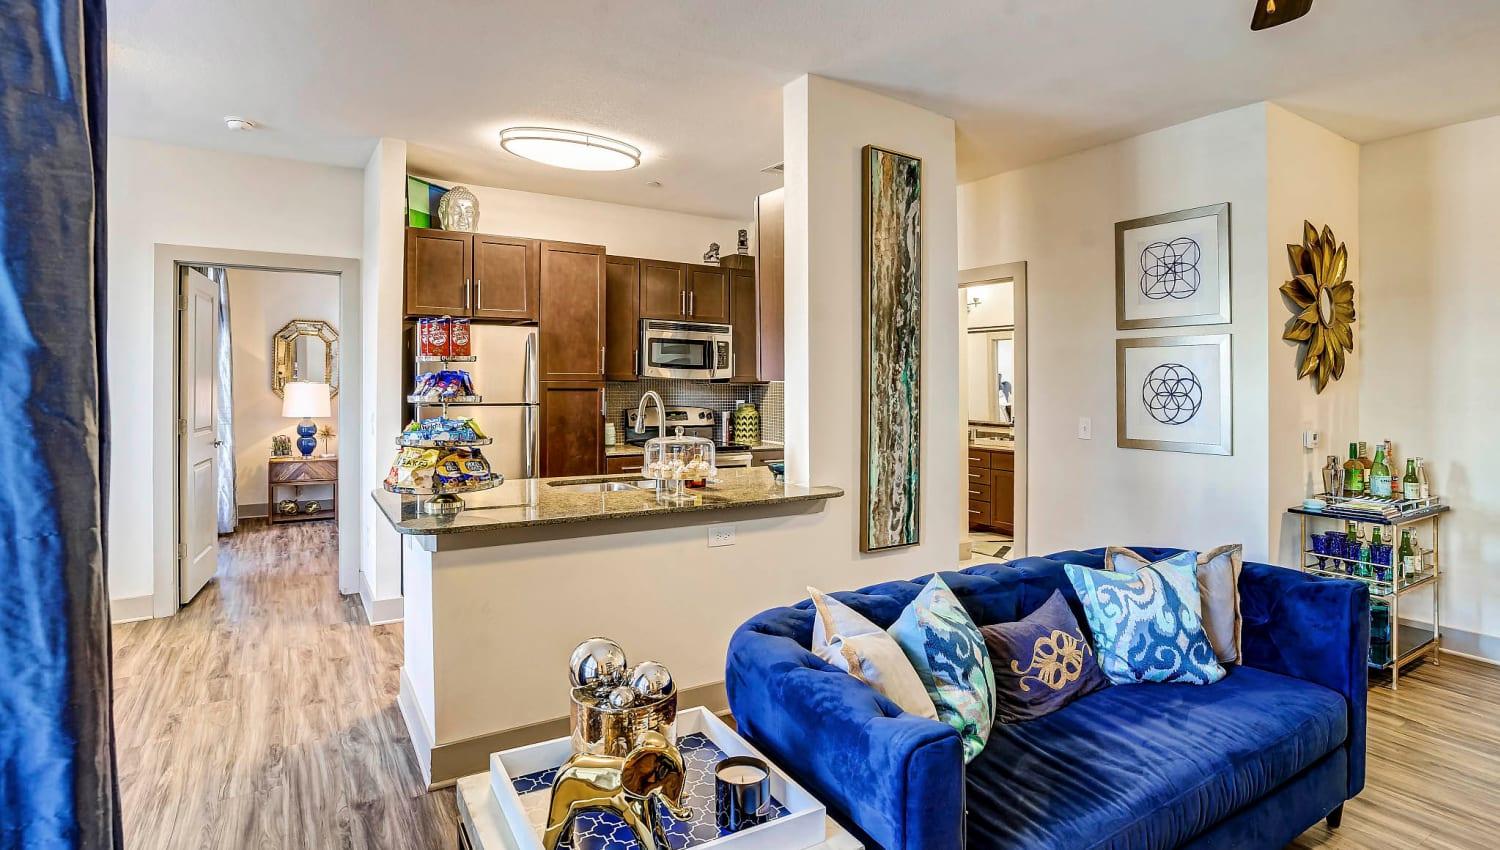 Model home with a kitchen breakfast bar near the living area at Sundance Creek in Midland, Texas